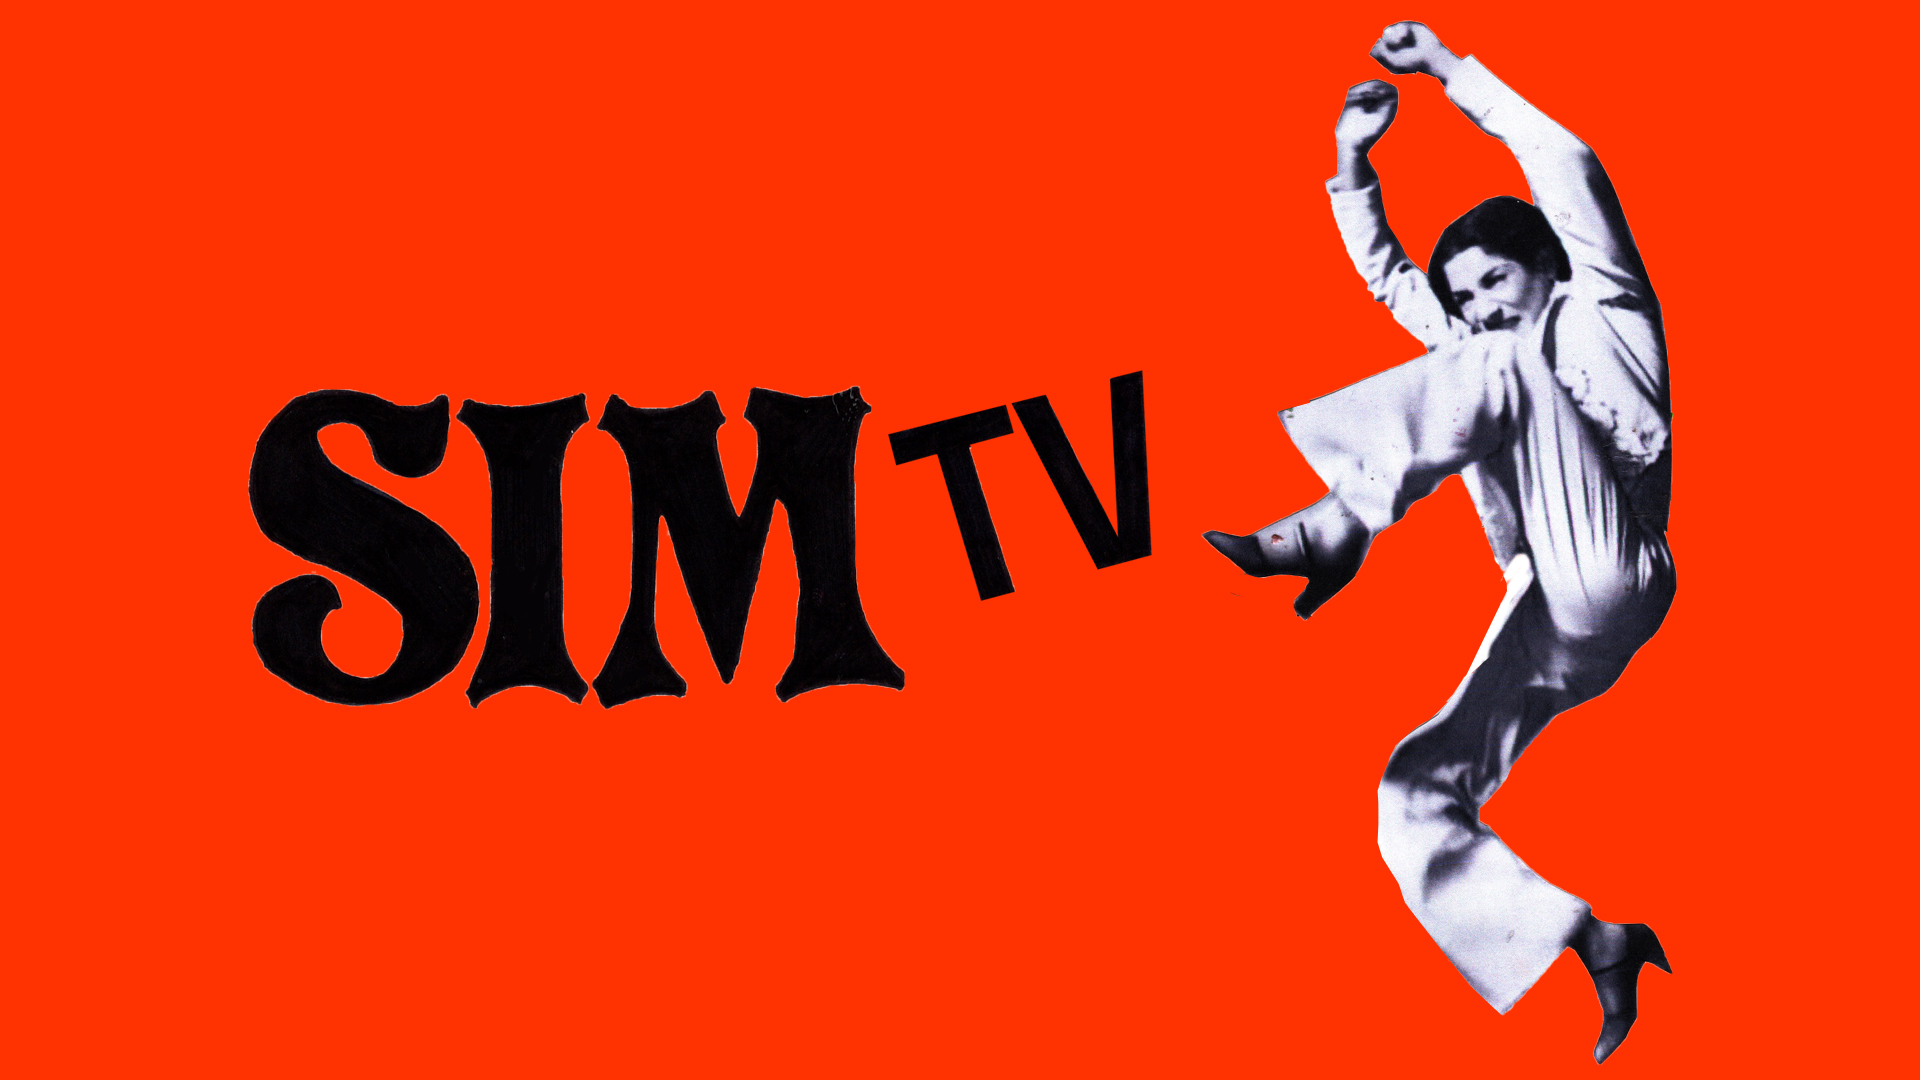 SIMTV photo bumper by Gaby